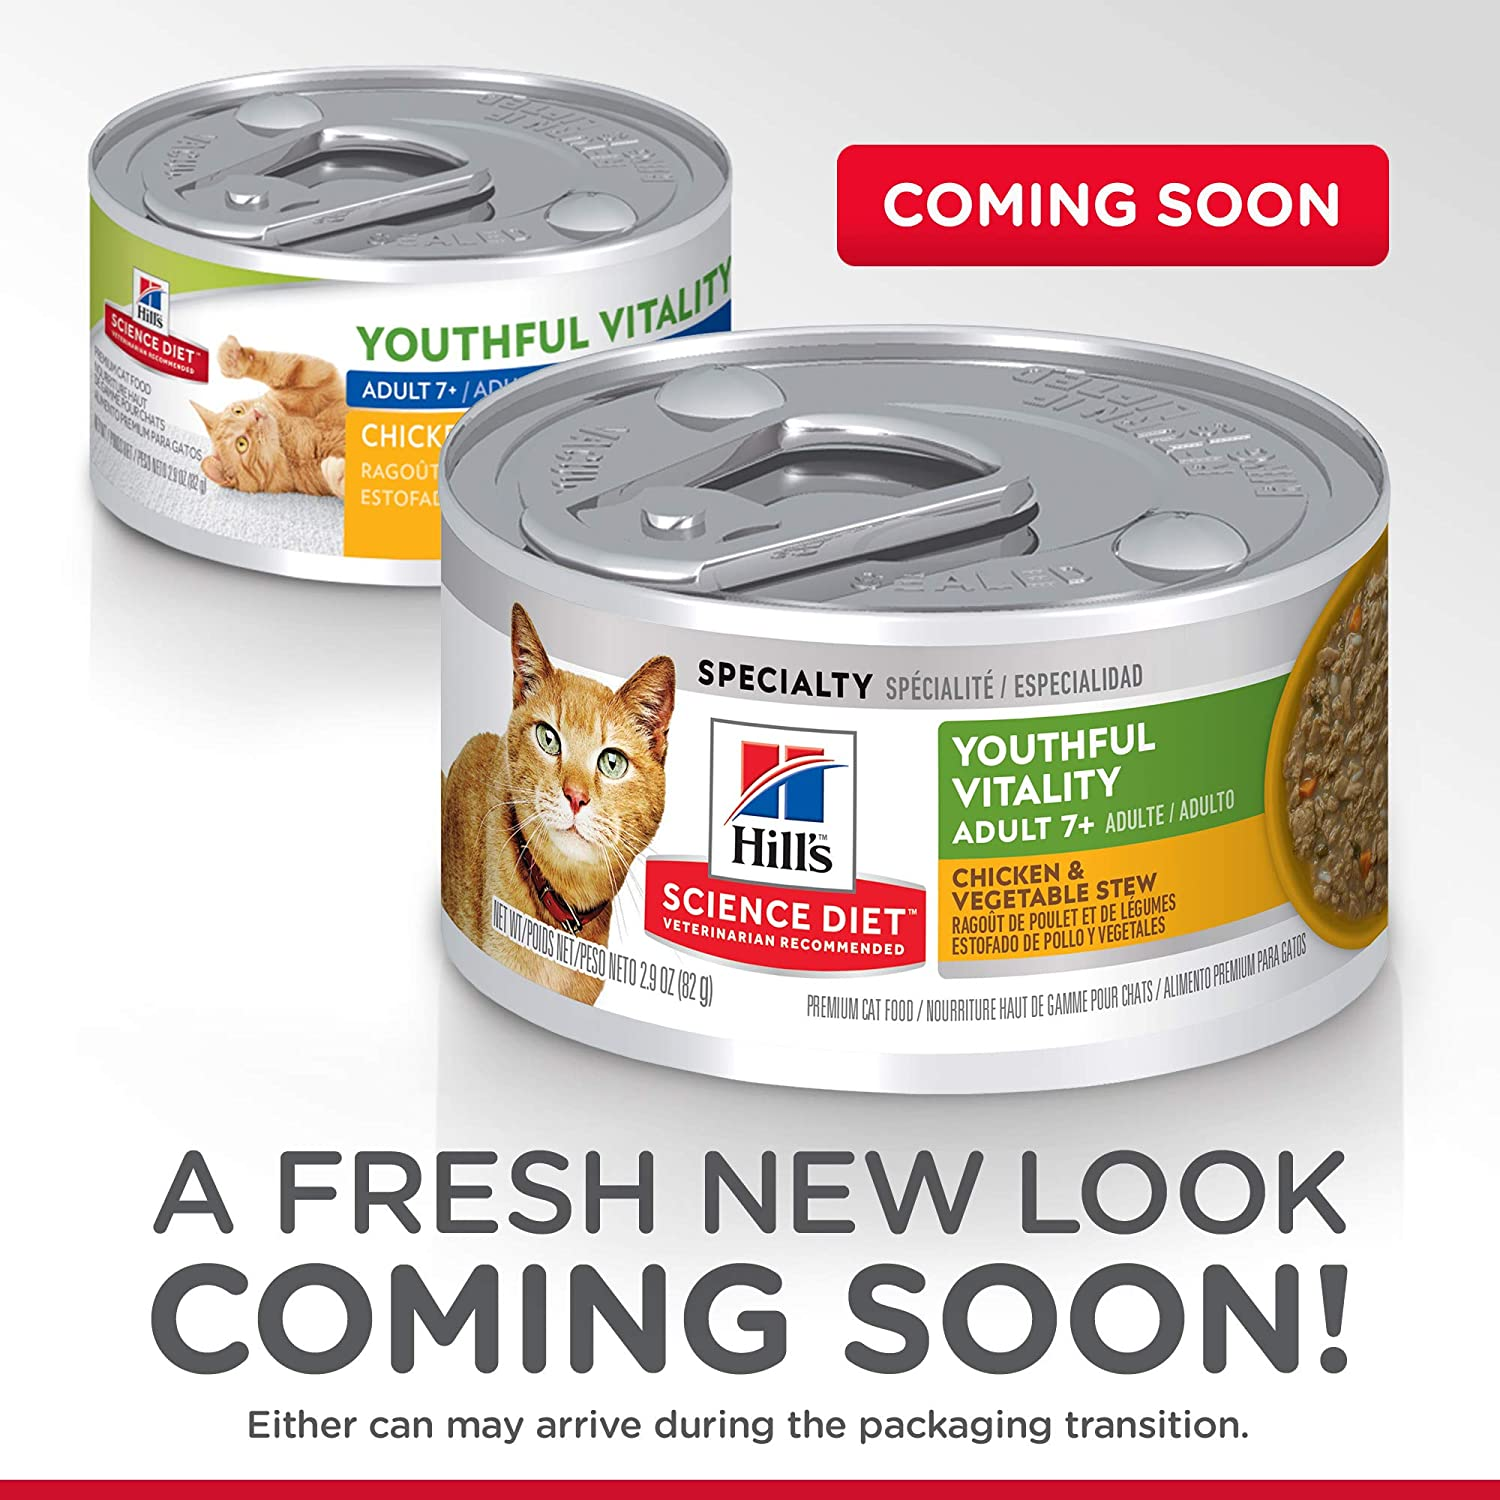 Amazon.com : Hills Science Diet Wet Cat Food, Adult 7+, Youthful Vitality, Chicken & Vegetable Stew, 2.9 oz, 24-pack : Pet Supplies